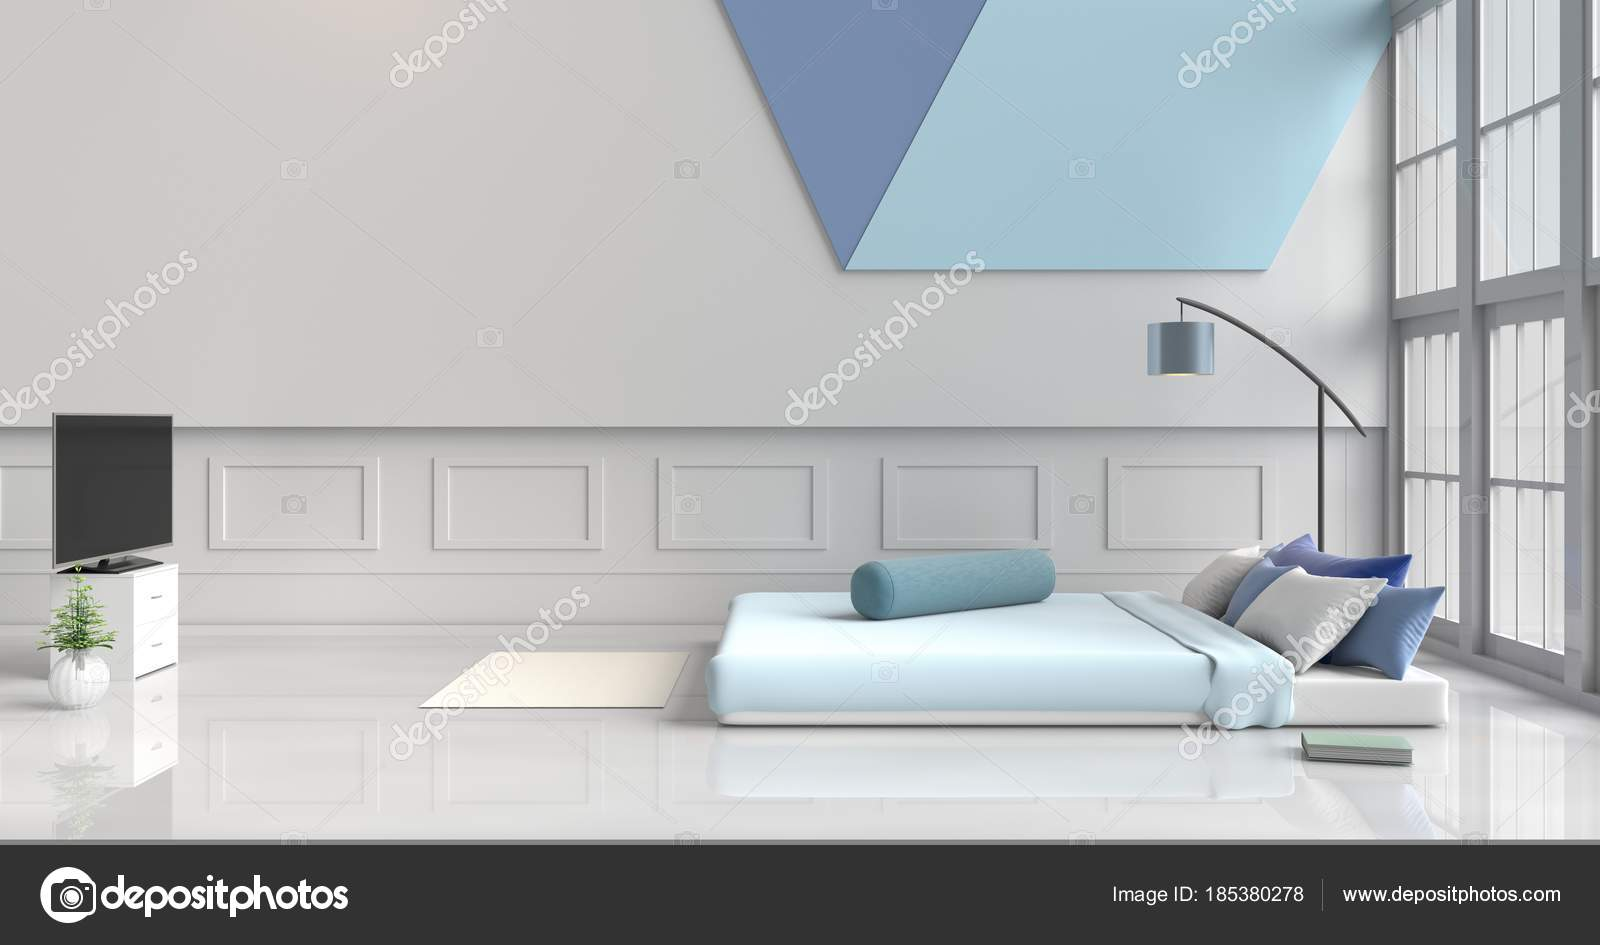 wei blaue schlafzimmer dekoriert mit licht blau bett baum glasvase stockfoto good24 185380278. Black Bedroom Furniture Sets. Home Design Ideas